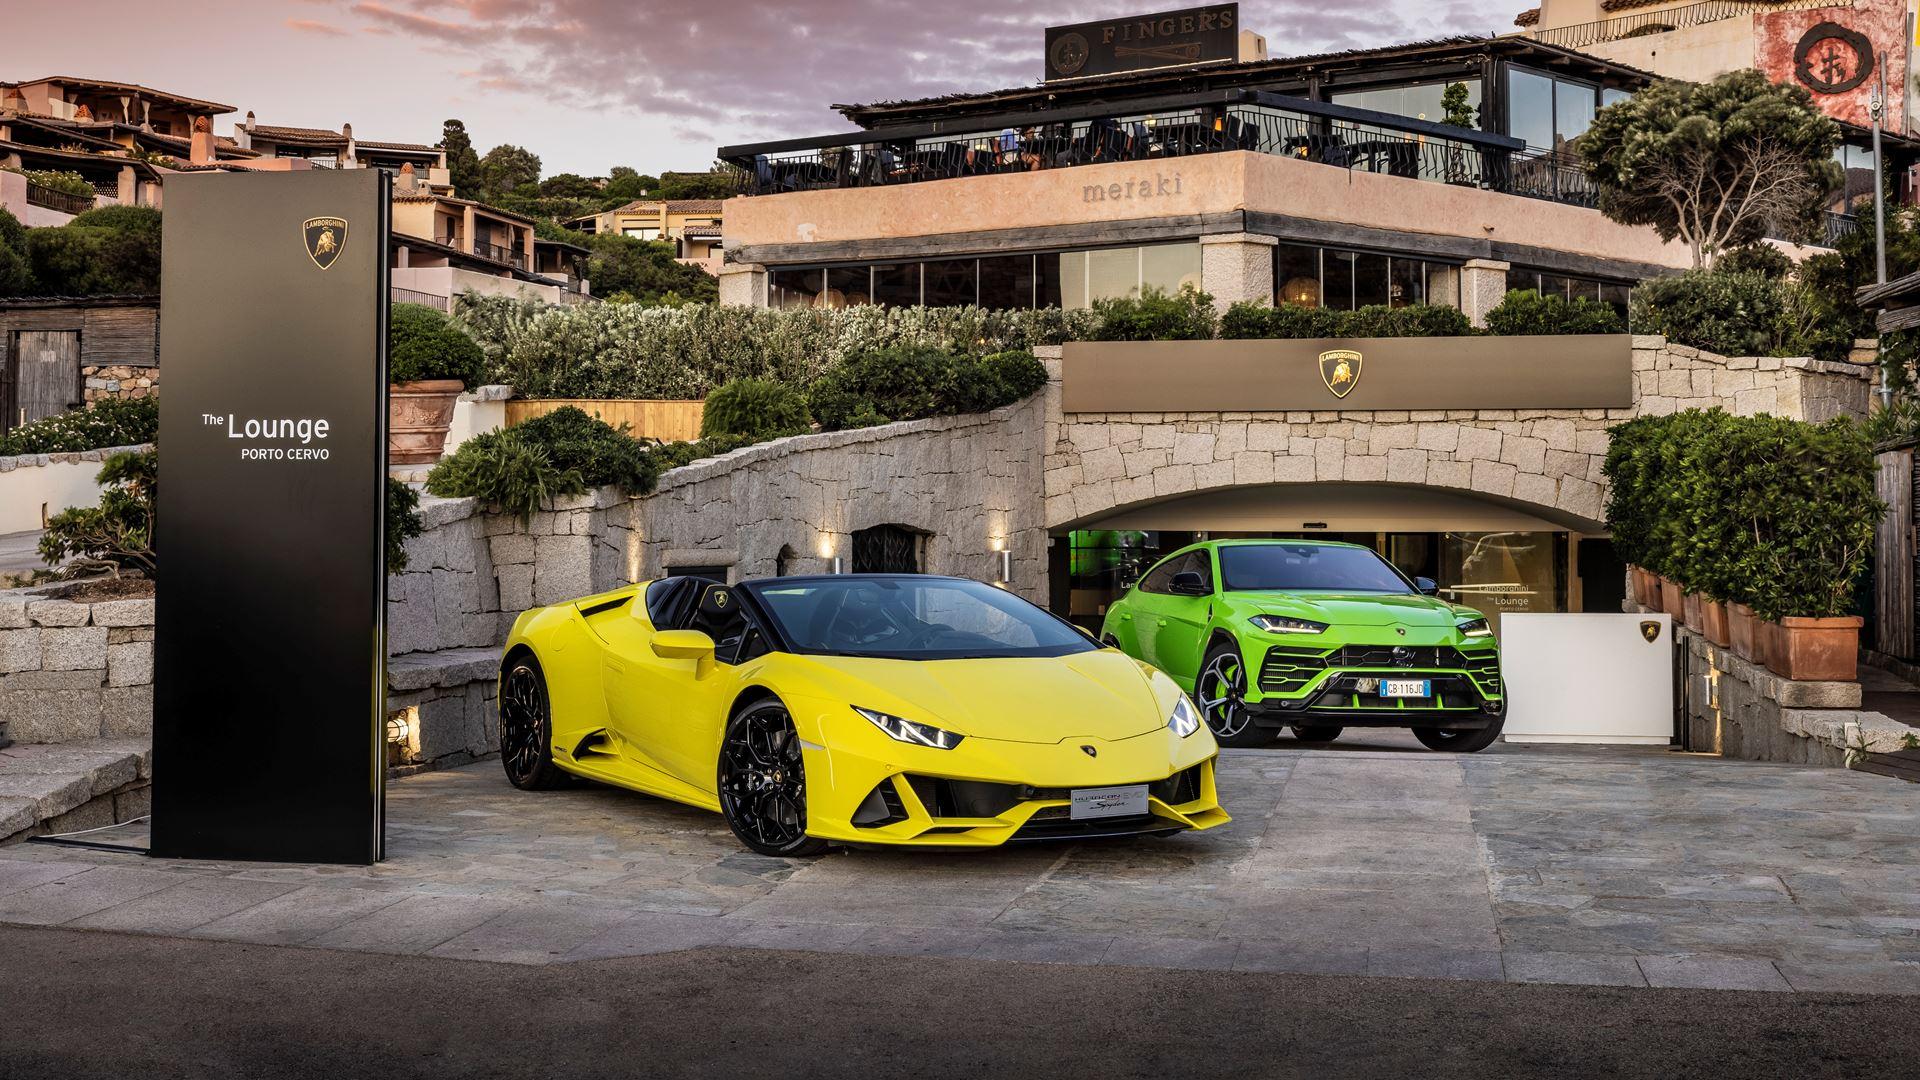 Lamborghini Lounge in Porto Cervo: exclusivity, lifestyle and product innovations, until September - Image 8